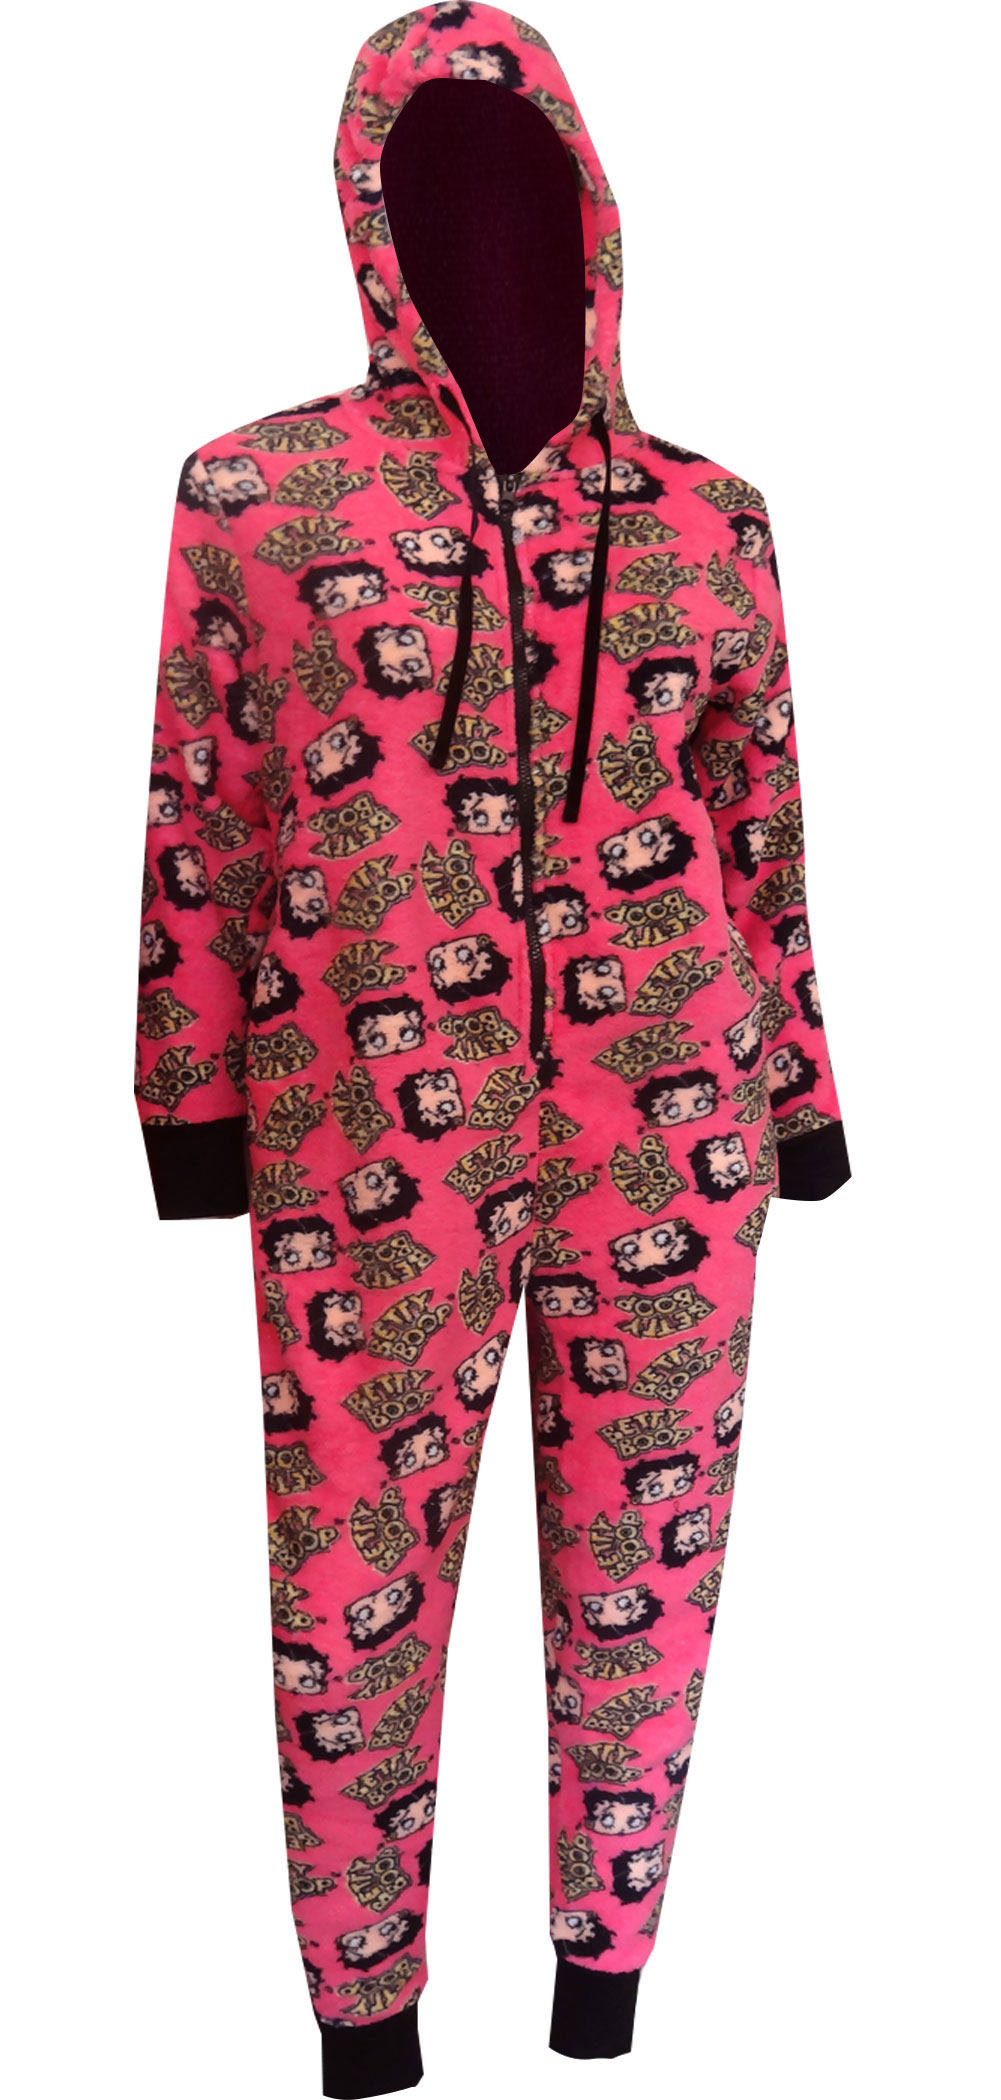 Betty Boop Hot Pink Plush One Piece Hoodie Pajama for women